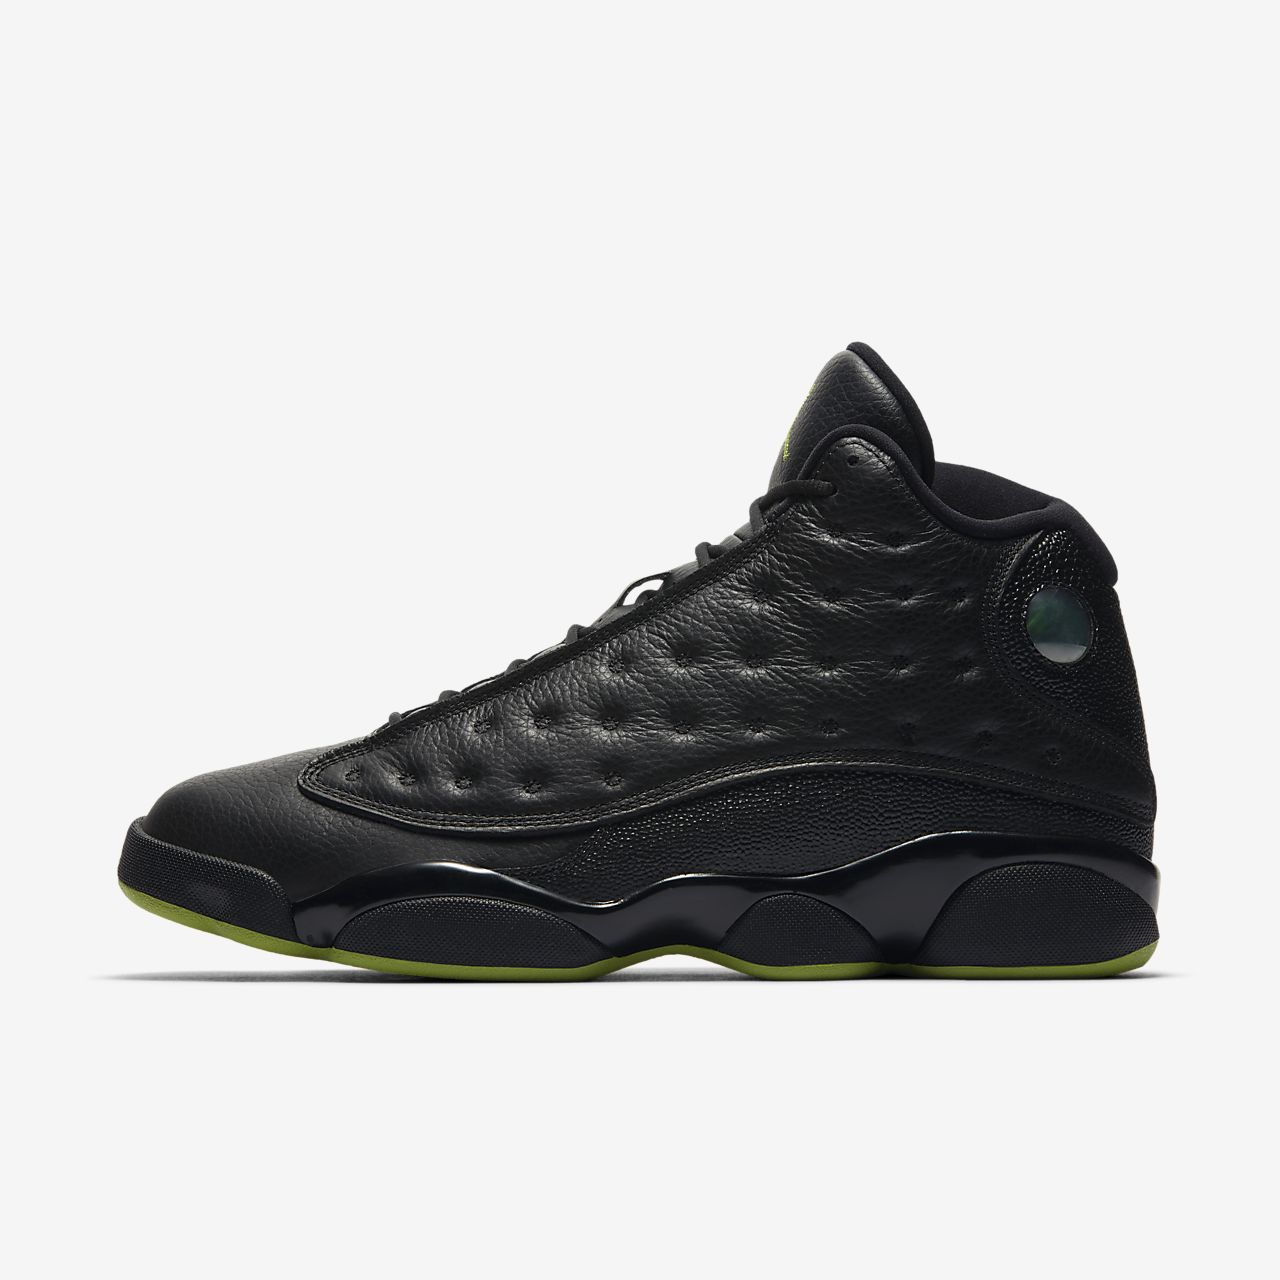 c5a47e42834e49 Air Jordan 13 Retro Men s Shoe. Nike.com ID